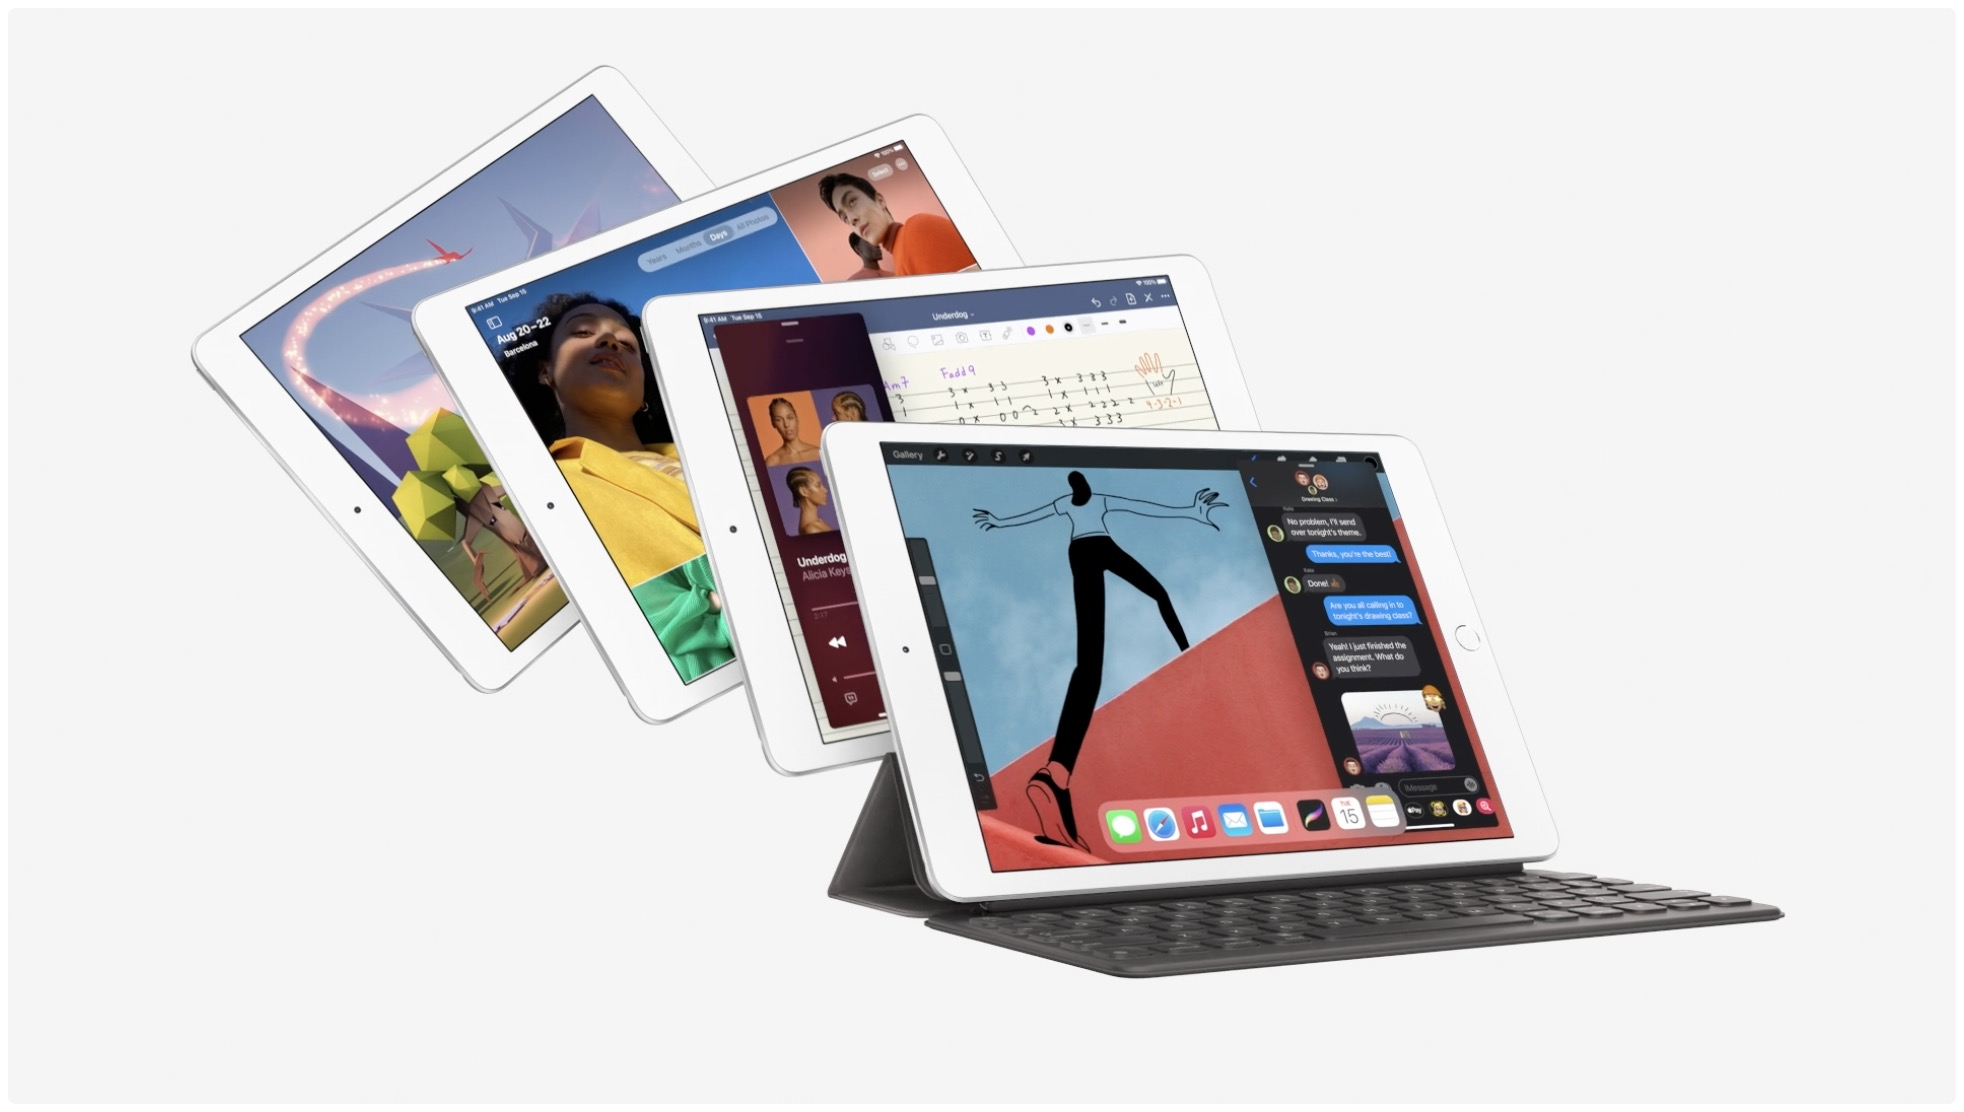 Apple promotional image showing eighth-generation budget iPad with Smart Keyboard